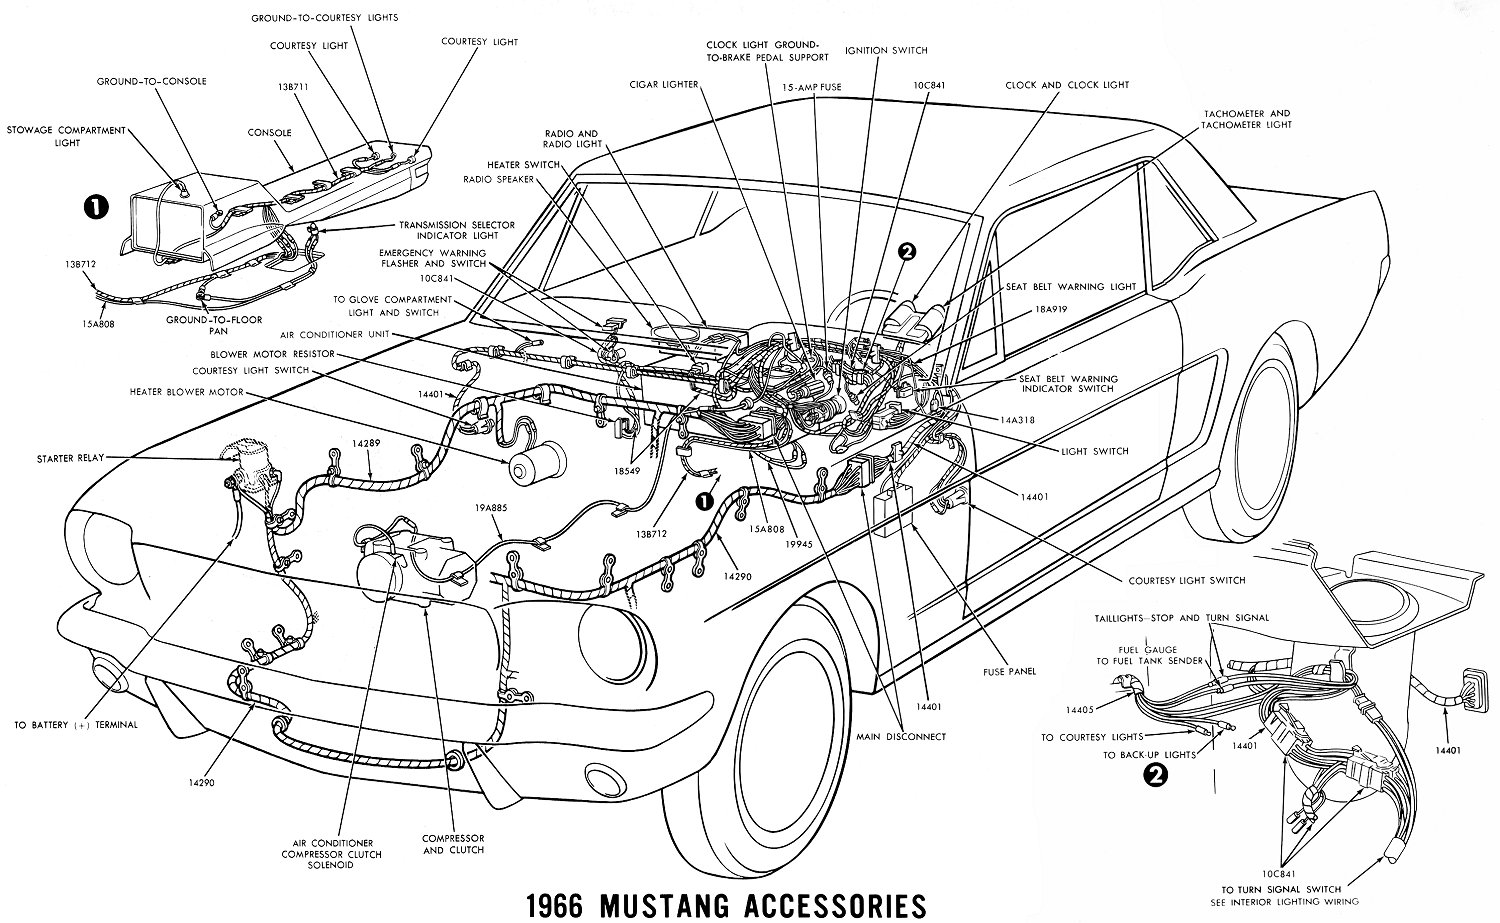 66acces 1966 mustang wiring diagrams average joe restoration 1966 mustang fog light wiring diagram at soozxer.org